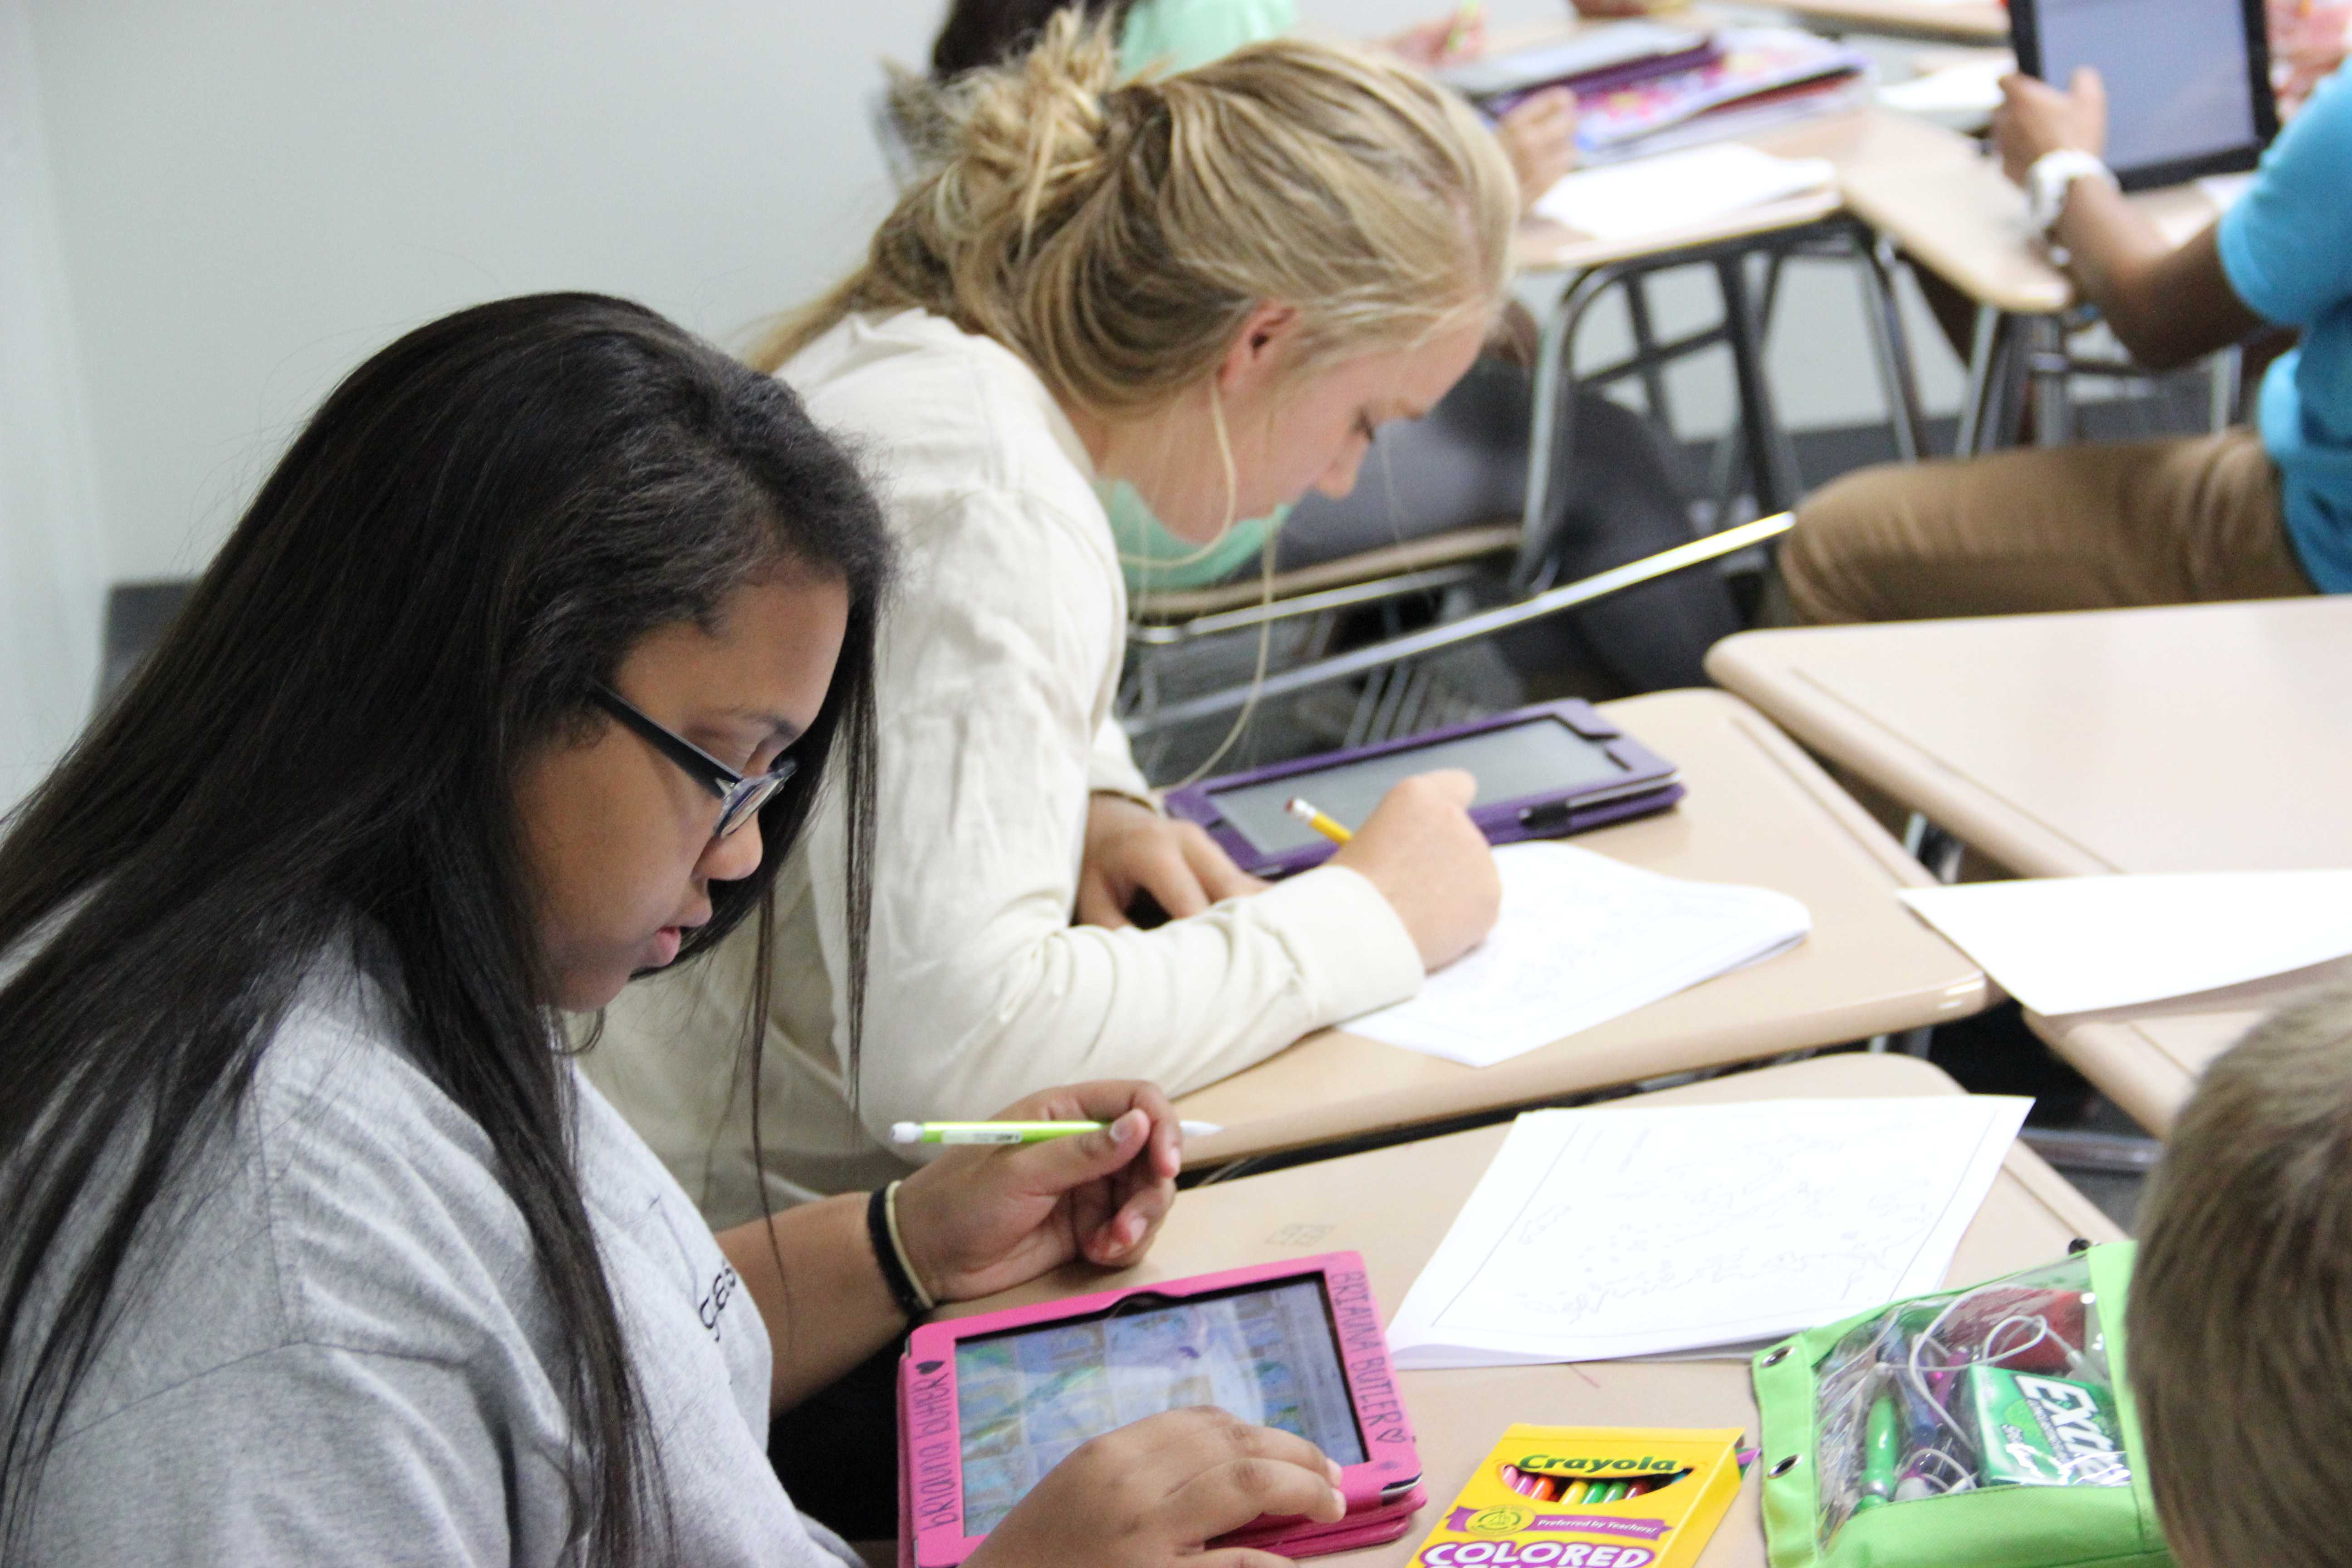 Sophomores Briauna Butler and Lara Collins work together in Mrs. Leyendecker's U.S. history class by using their iPads to help them label an assignment. Photo by Chelsea Banks